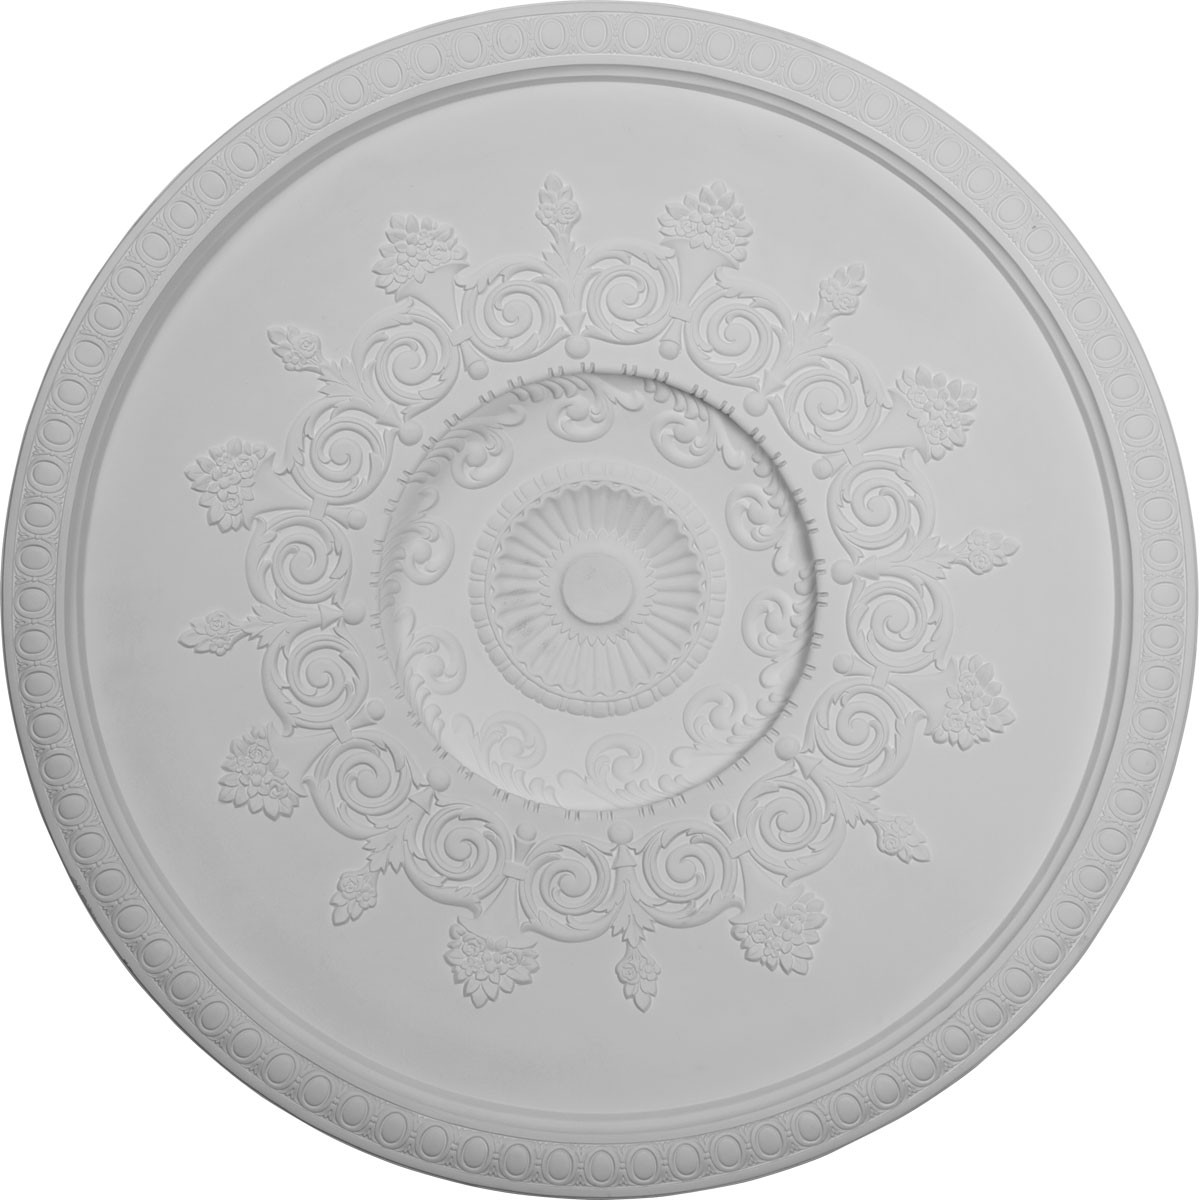 "EM-DOME47AN - 47 1/2""OD x 41 3/4""ID x 8 5/8""D, Andrea Ceiling Dome, 2 7/8""W Trim (41 3/8"" Diameter x 7""D  Rough Opening)"